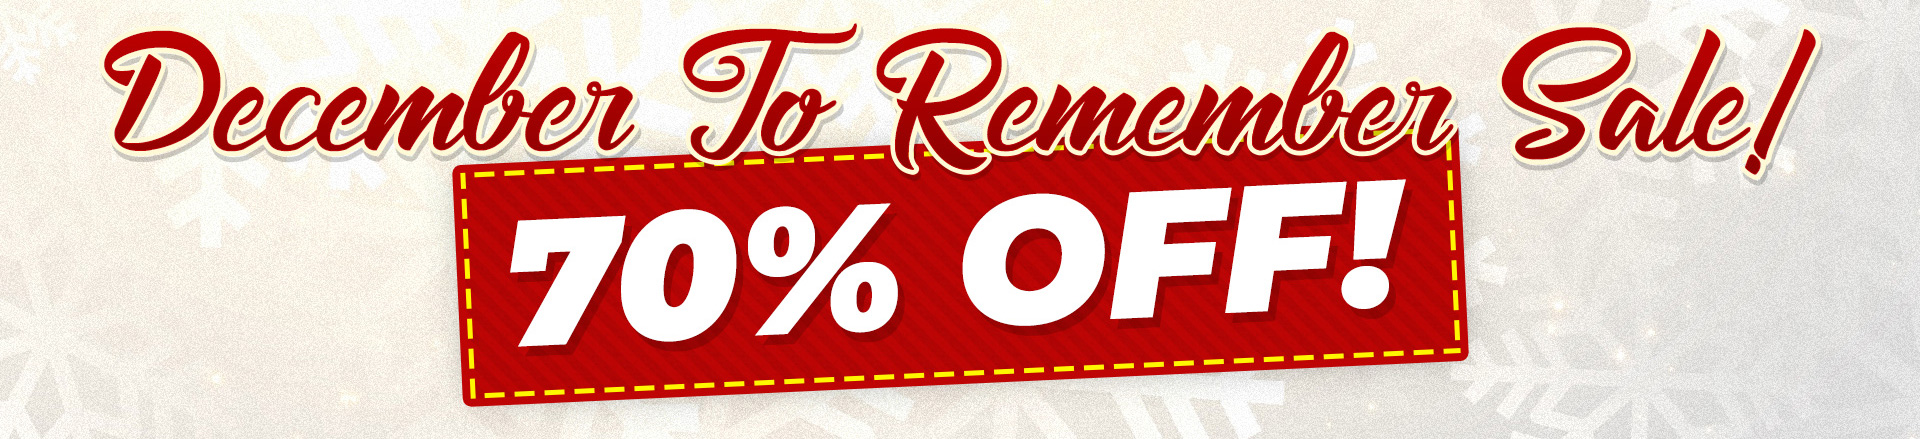 December To Remember Sale! 70% OFF!